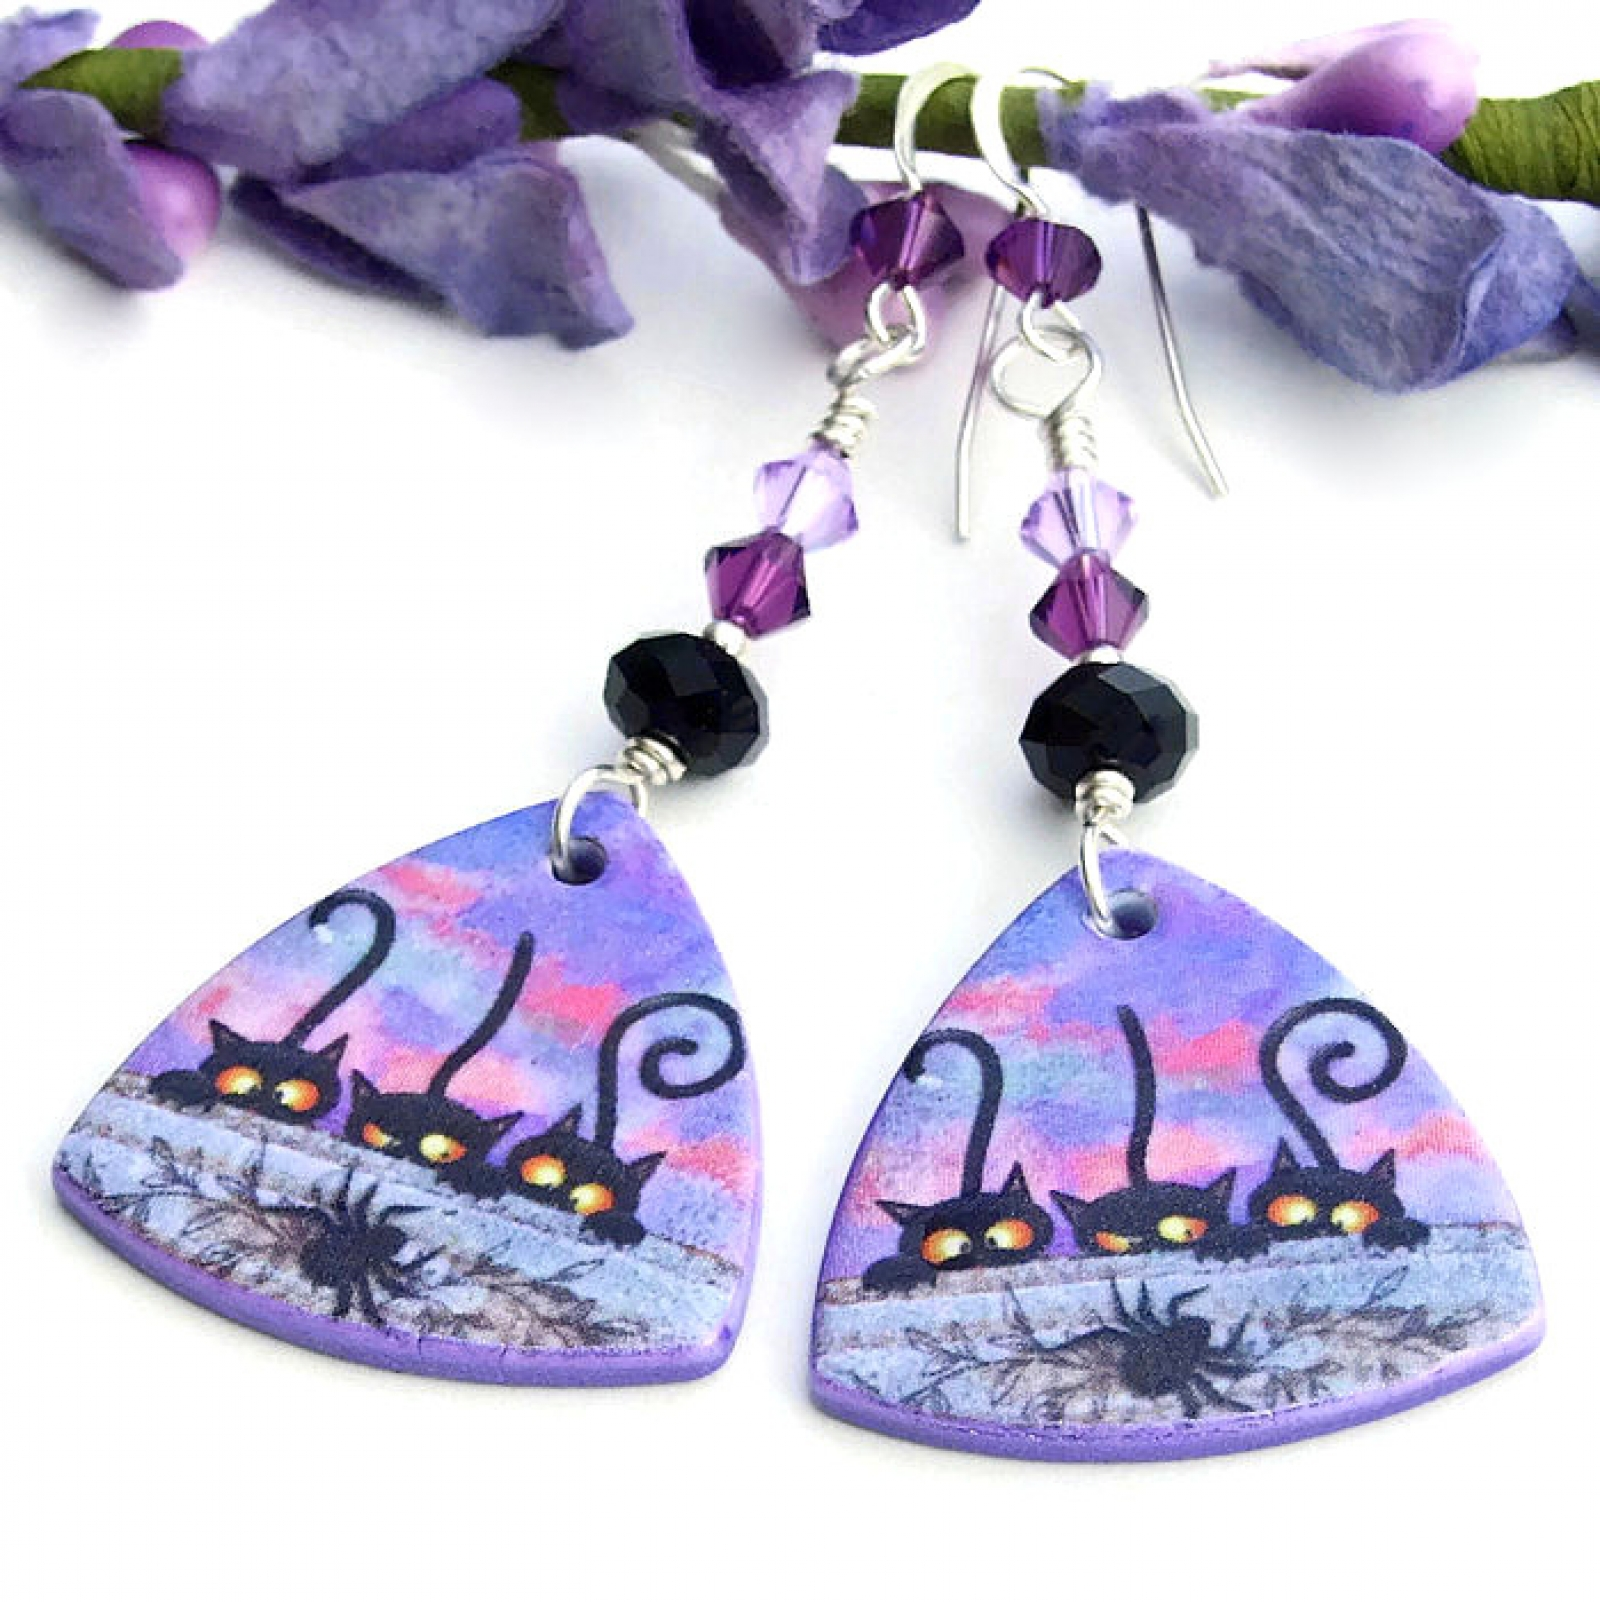 ... Black cats and spider Halloween earrings ...